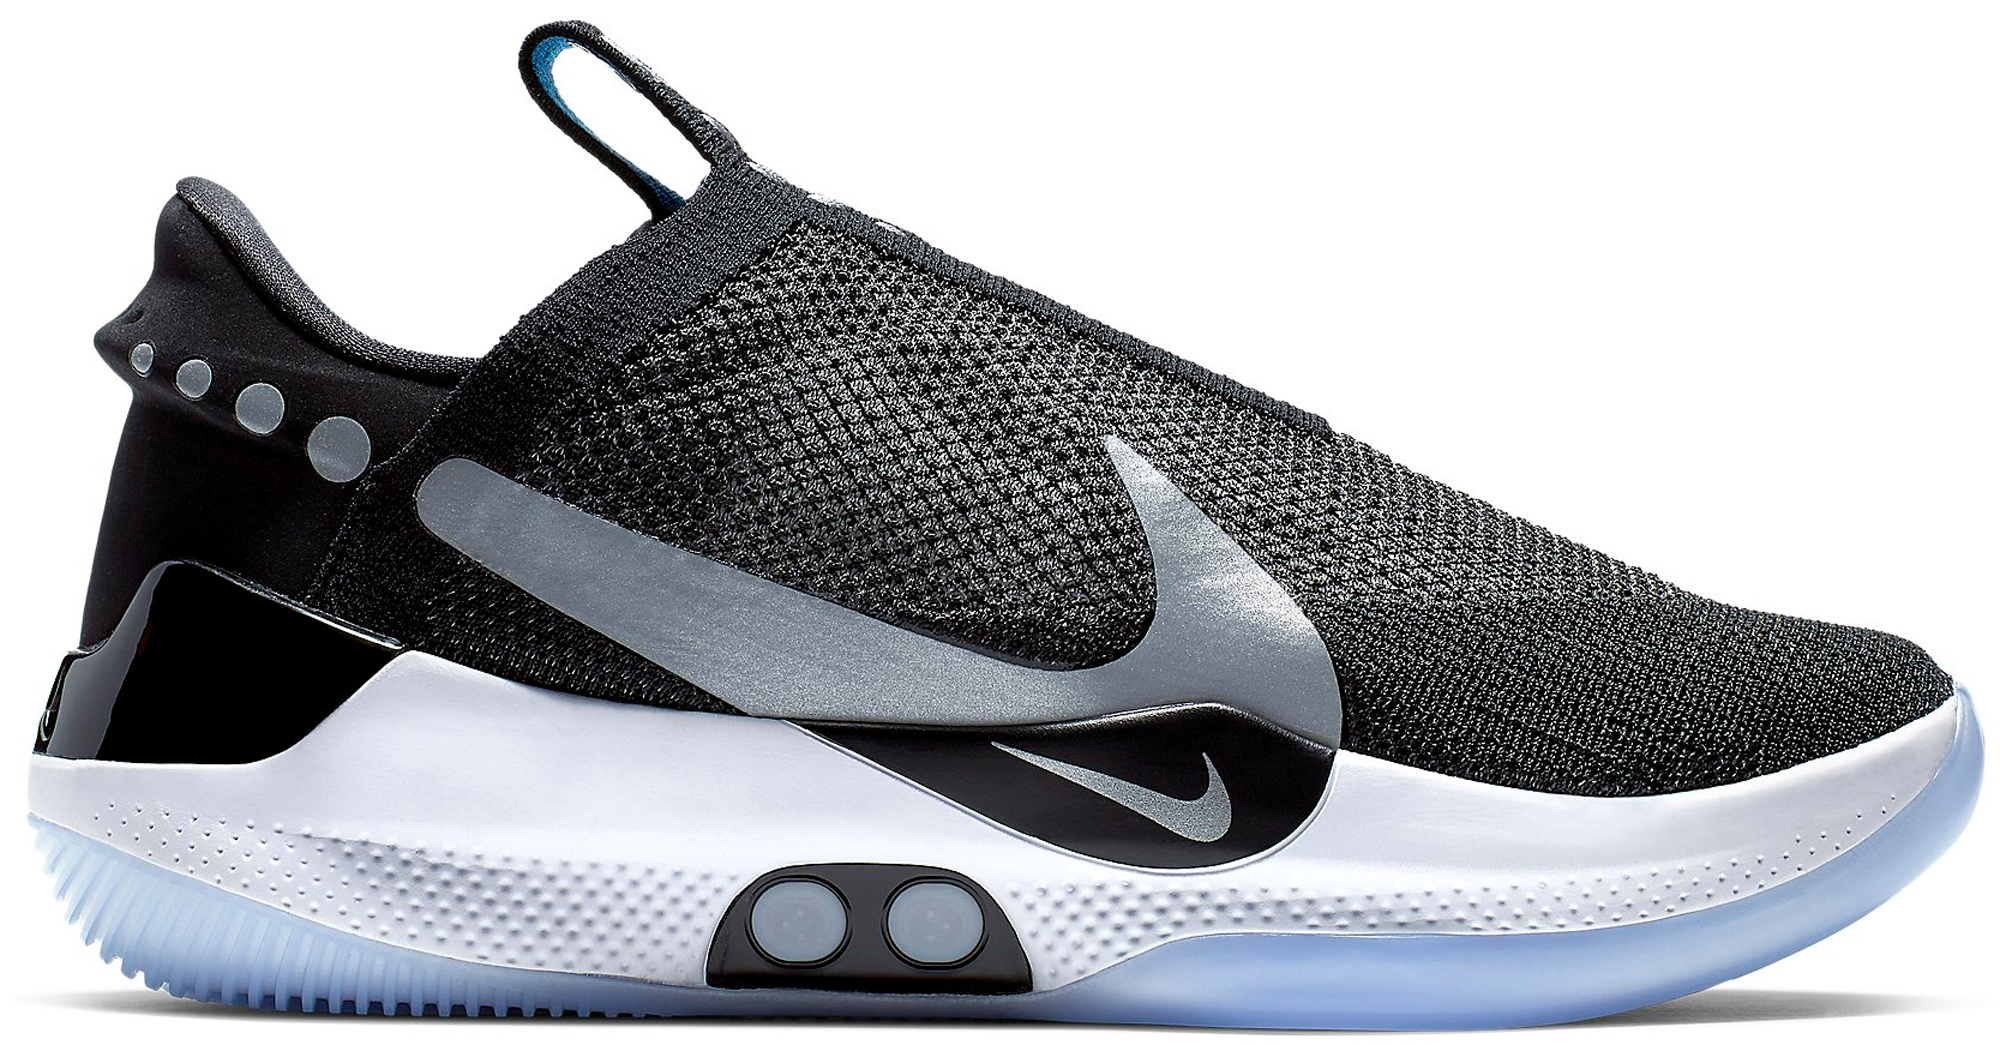 78aeee20 Check out the Nike Adapt BB Black Pure Platinum (US Charger) available on  StockX